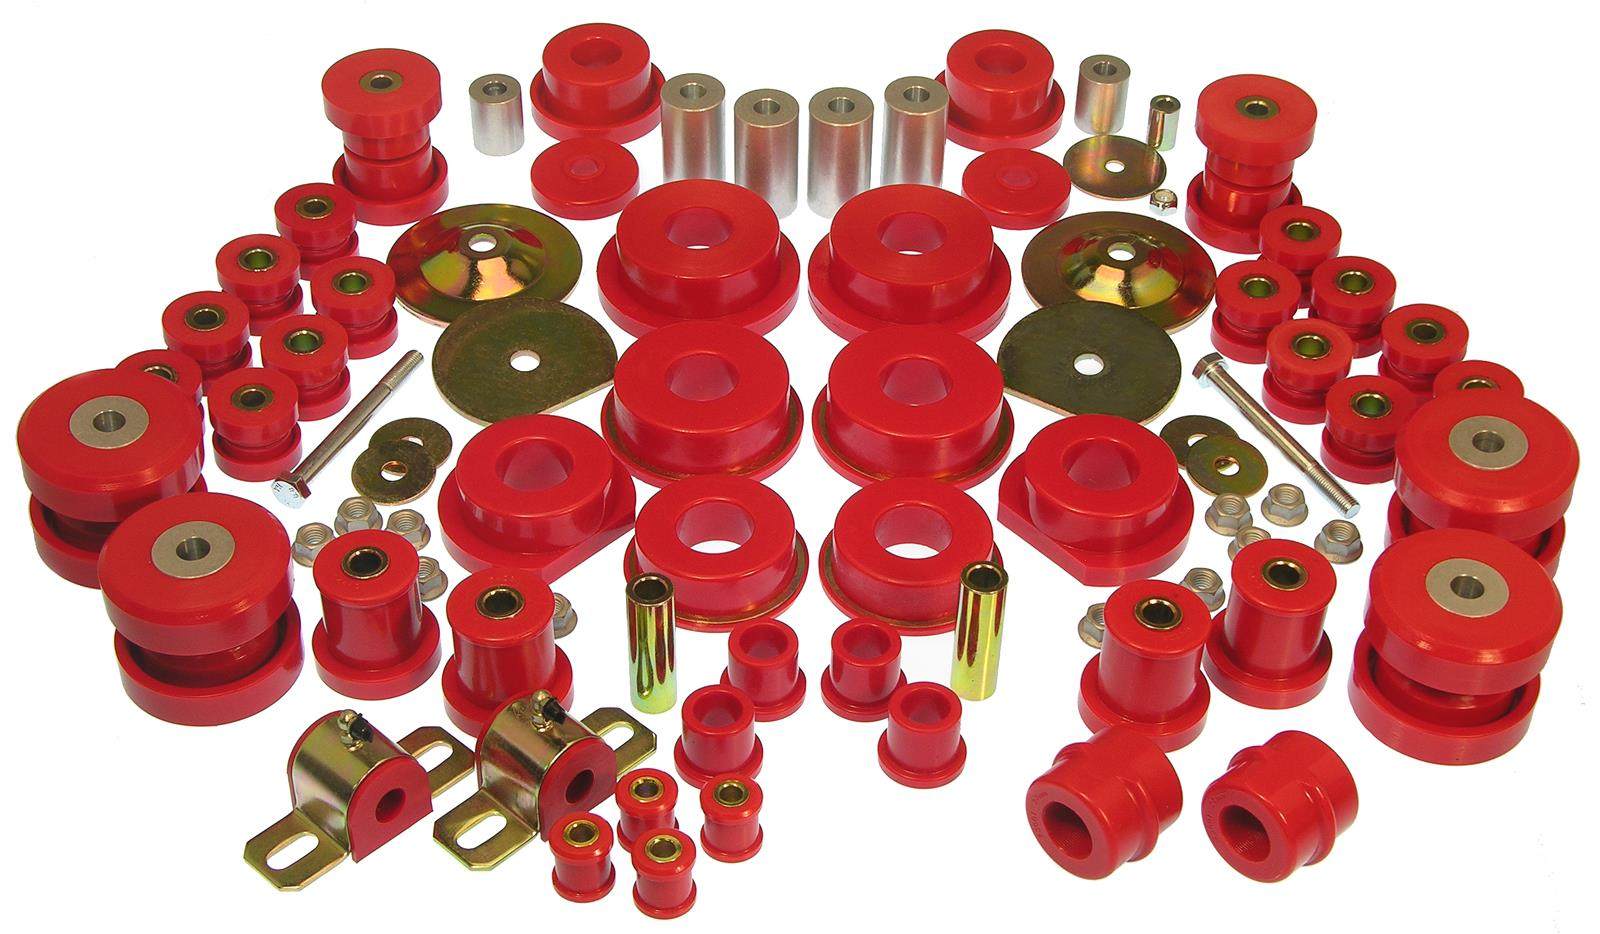 Prothane 4-218 Front Control Arm Kit